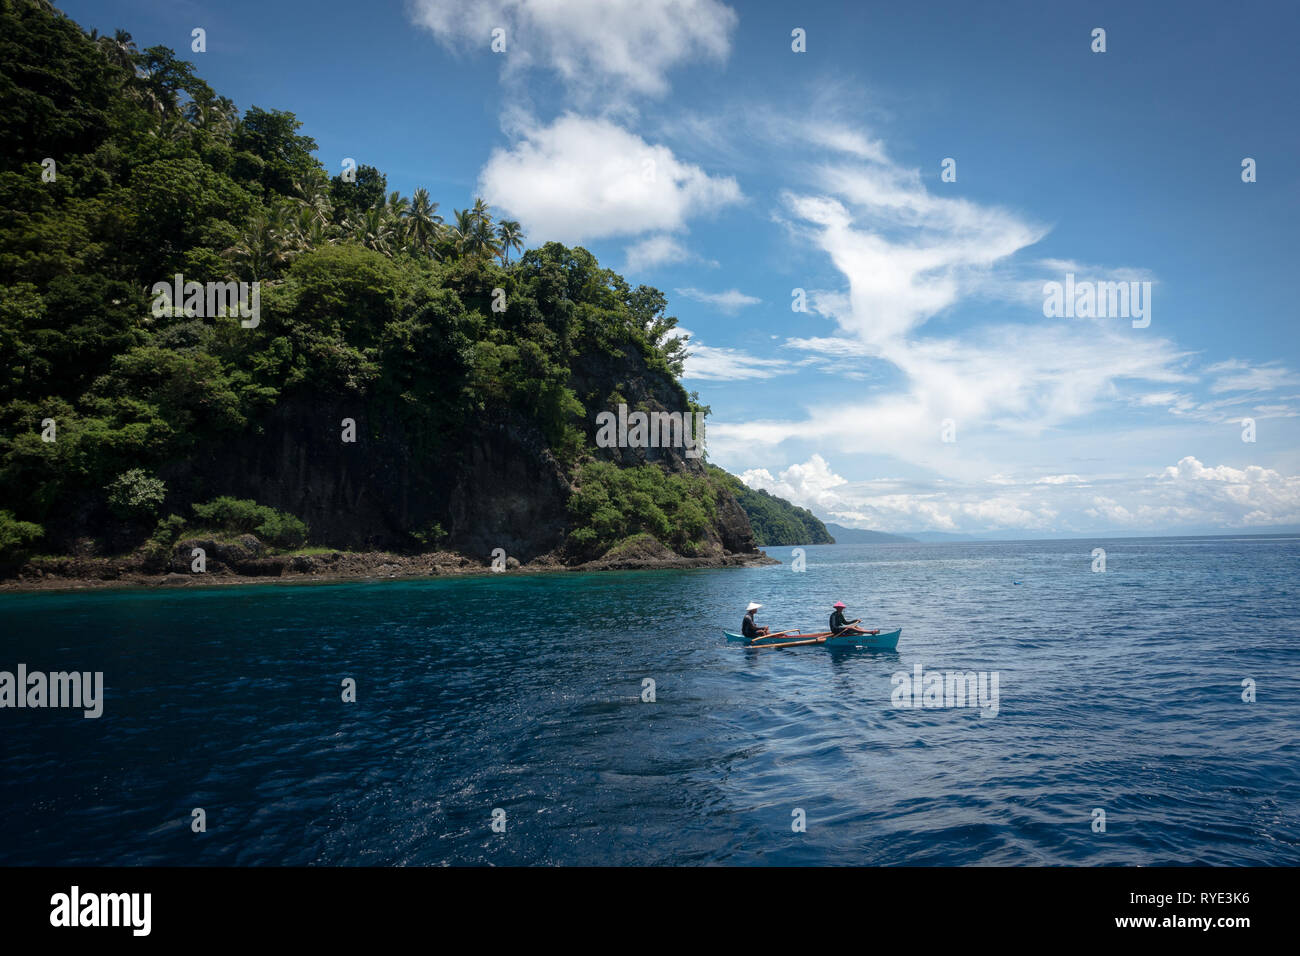 Fishermen with Conical Hat in tiny boat, Padre Burgos Hills - Leyte, Philippines - Stock Image